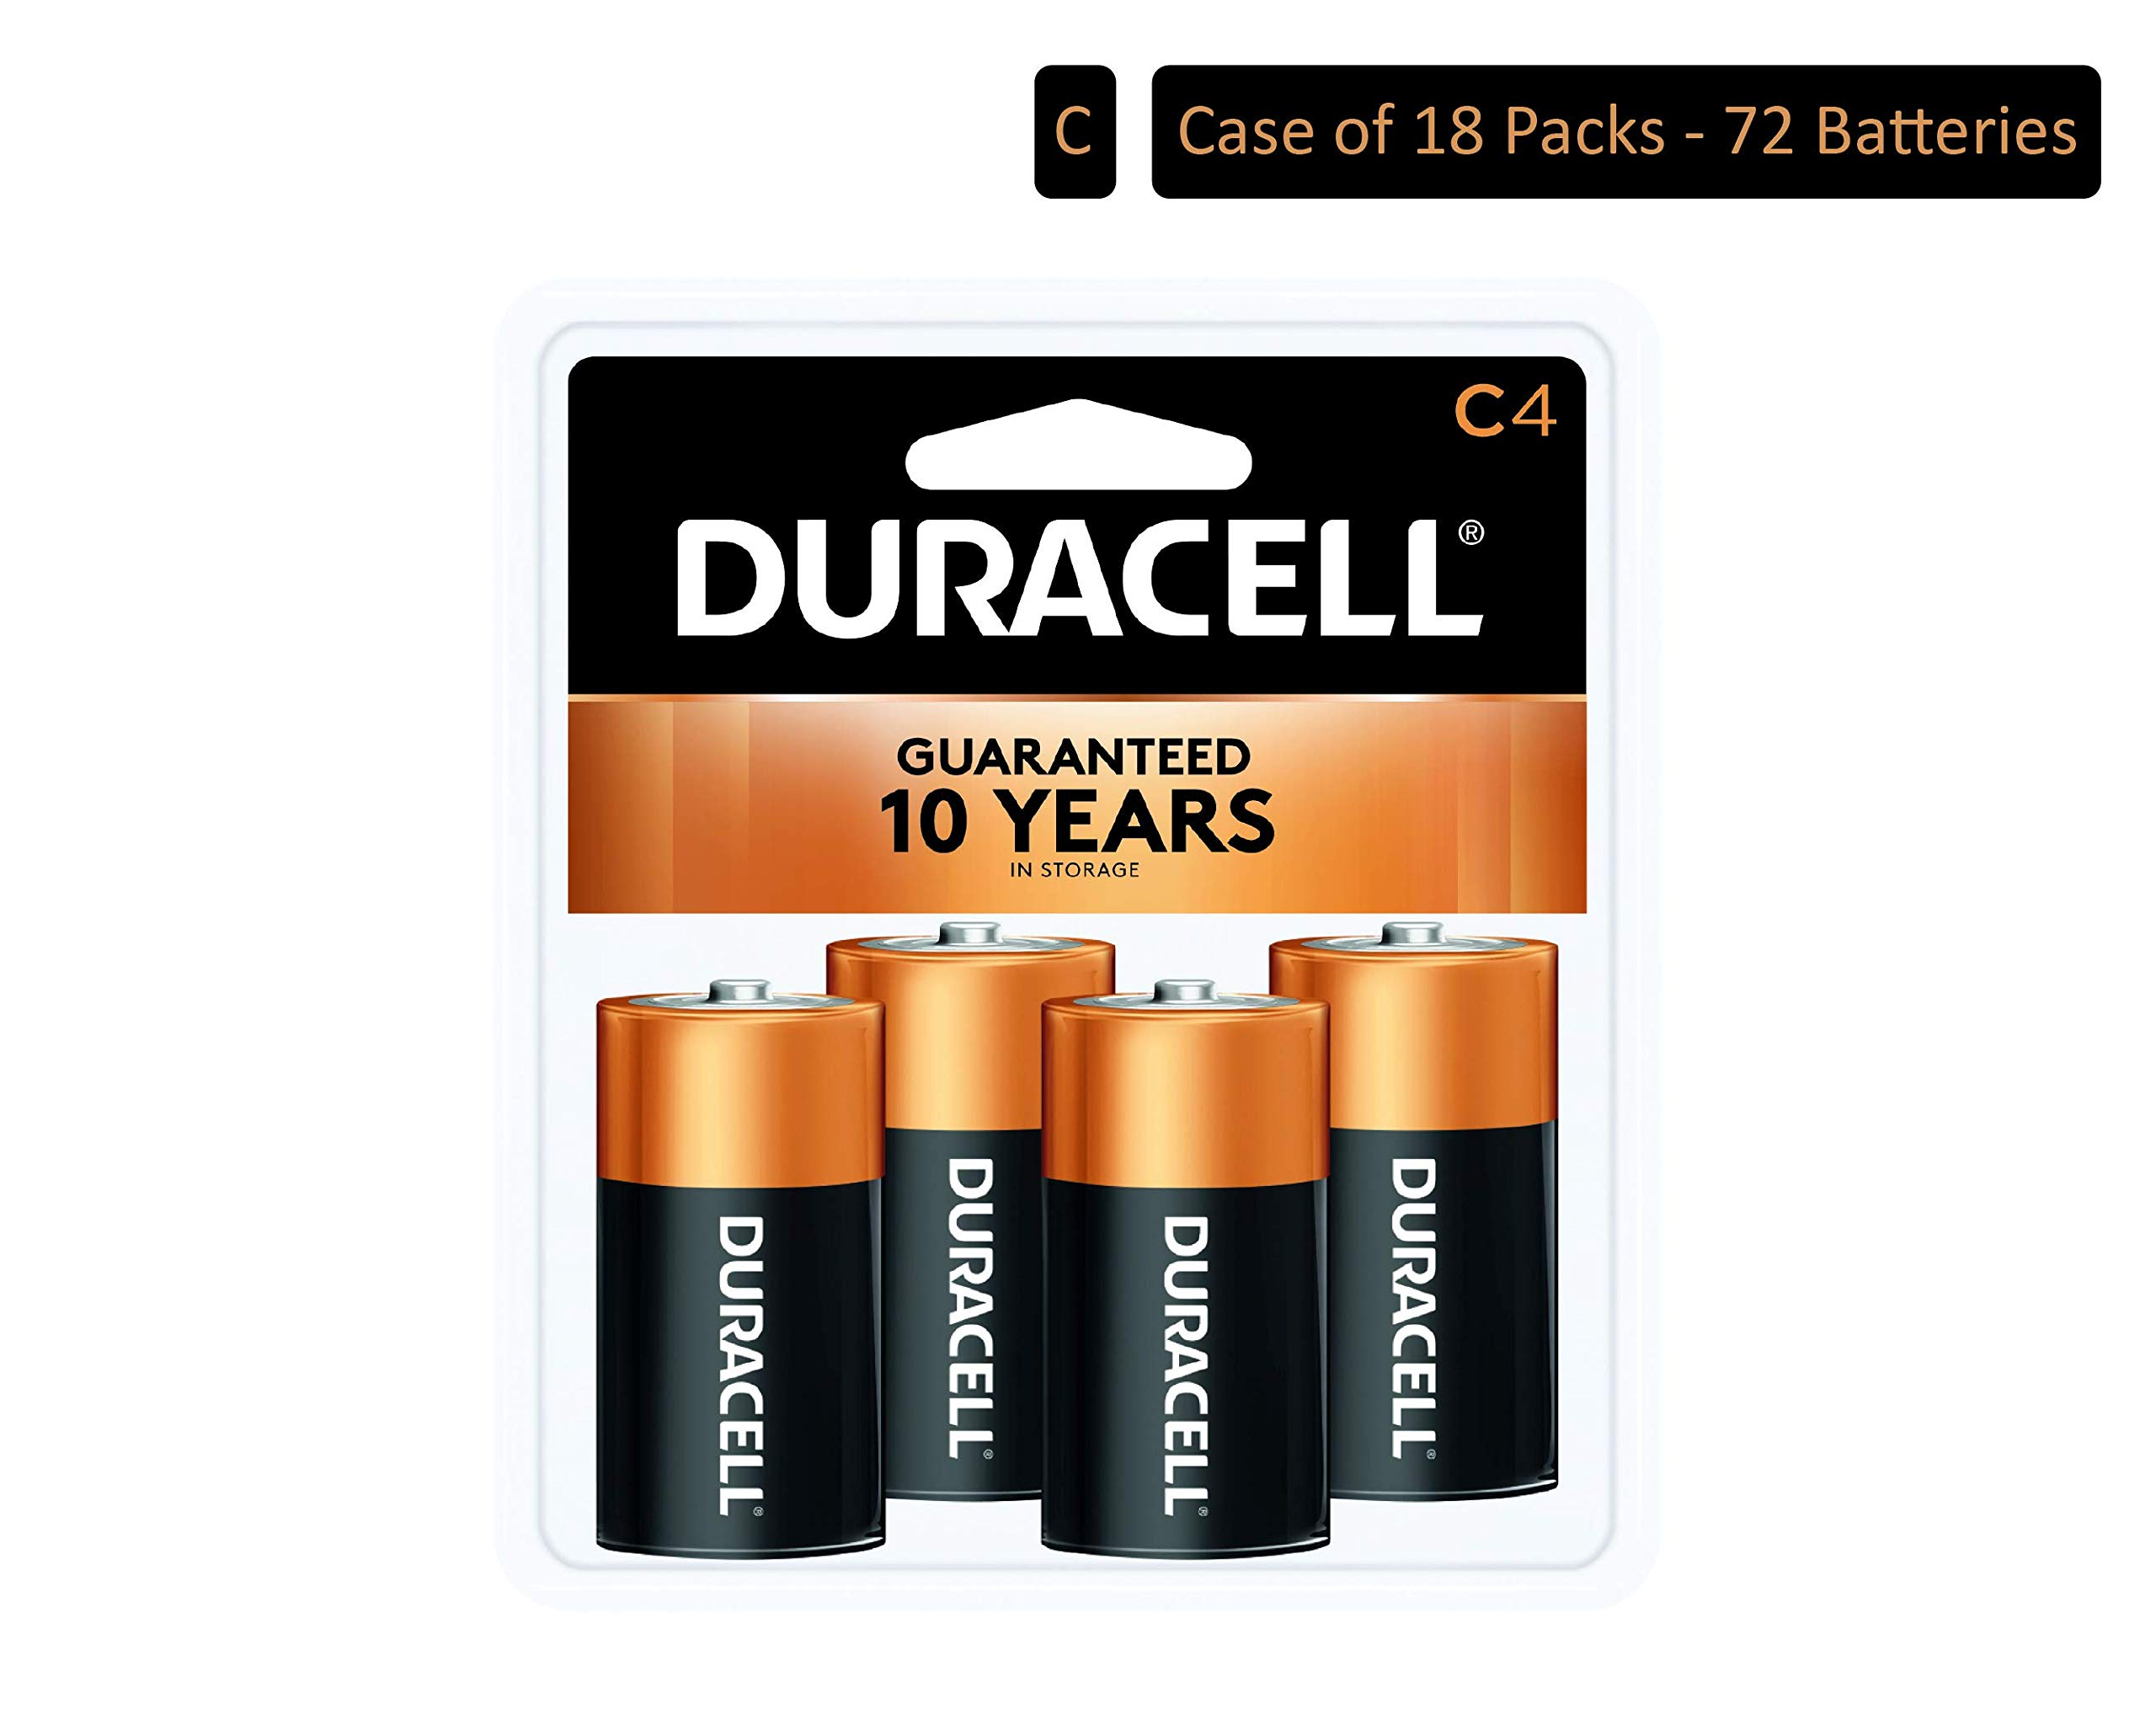 Duracell - CopperTop C Alkaline Batteries with recloseable Package - Long Lasting, All-Purpose C Battery for Household and Business - 4 Count (Pack of 18) by Duracell